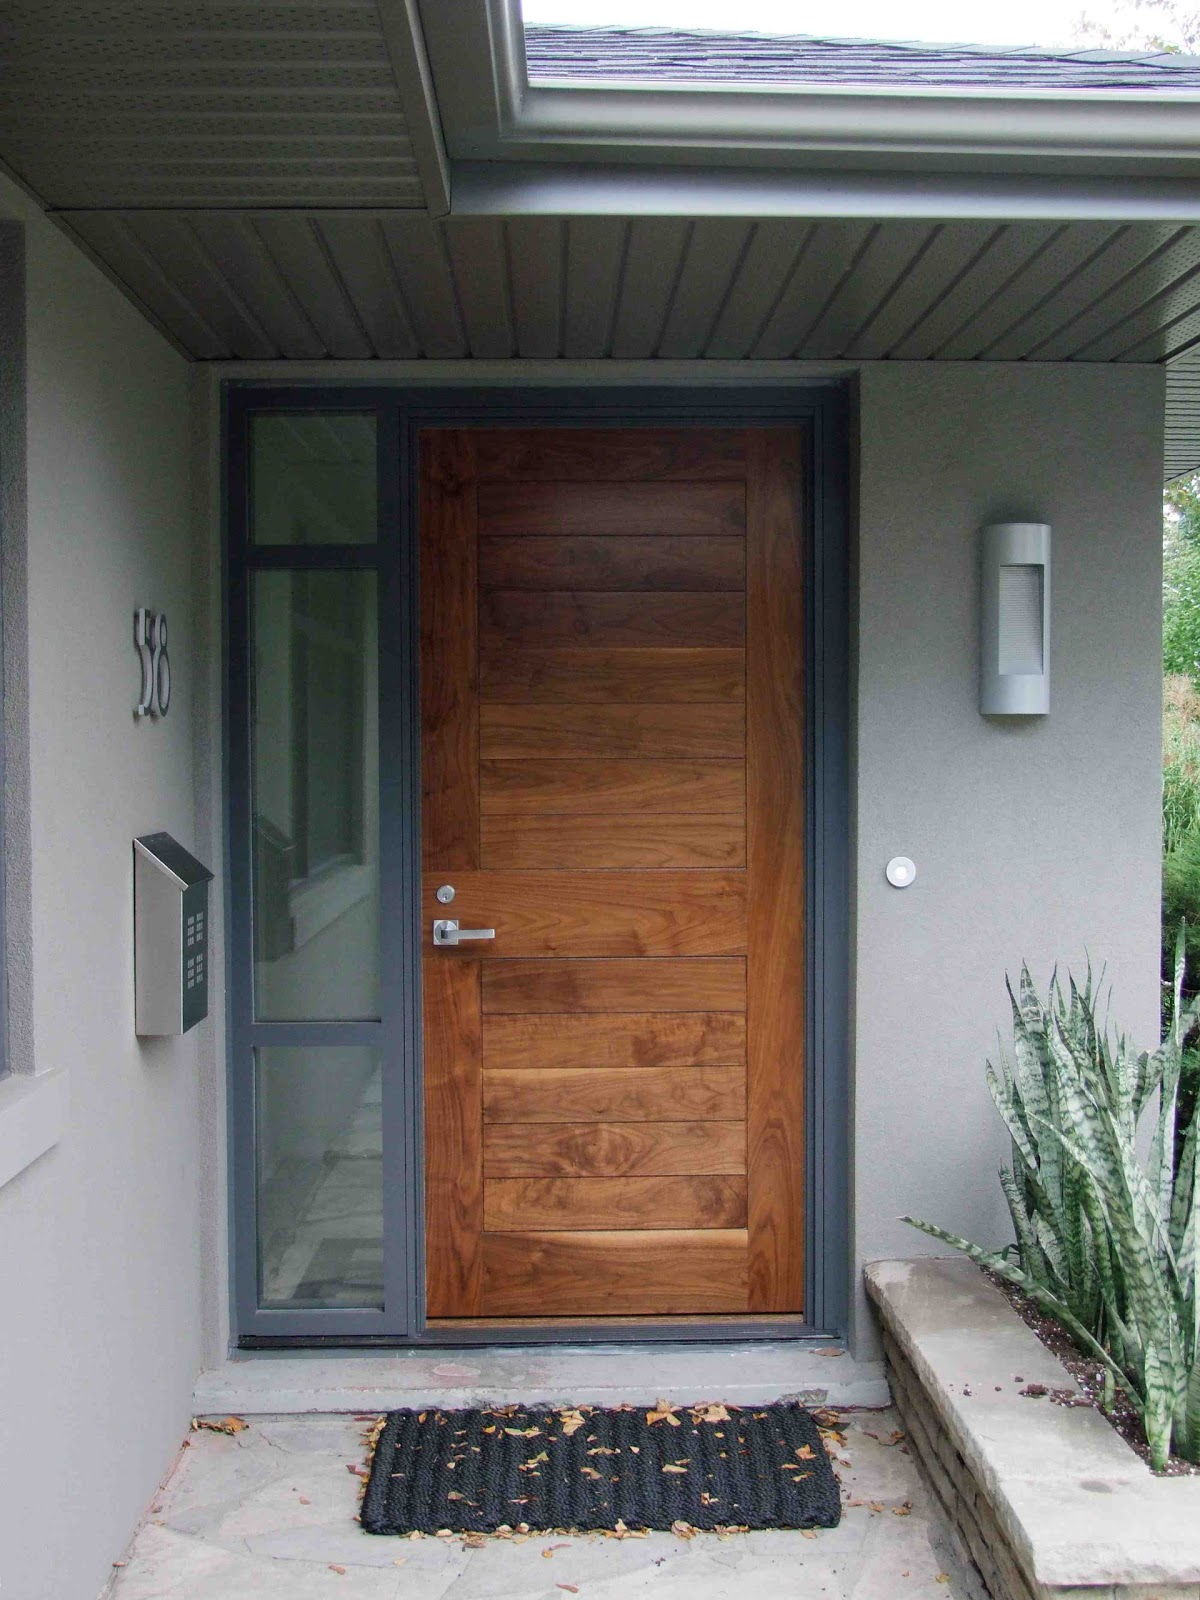 Creed 70 39 s bungalow makes a modern impression for Exterior house doors